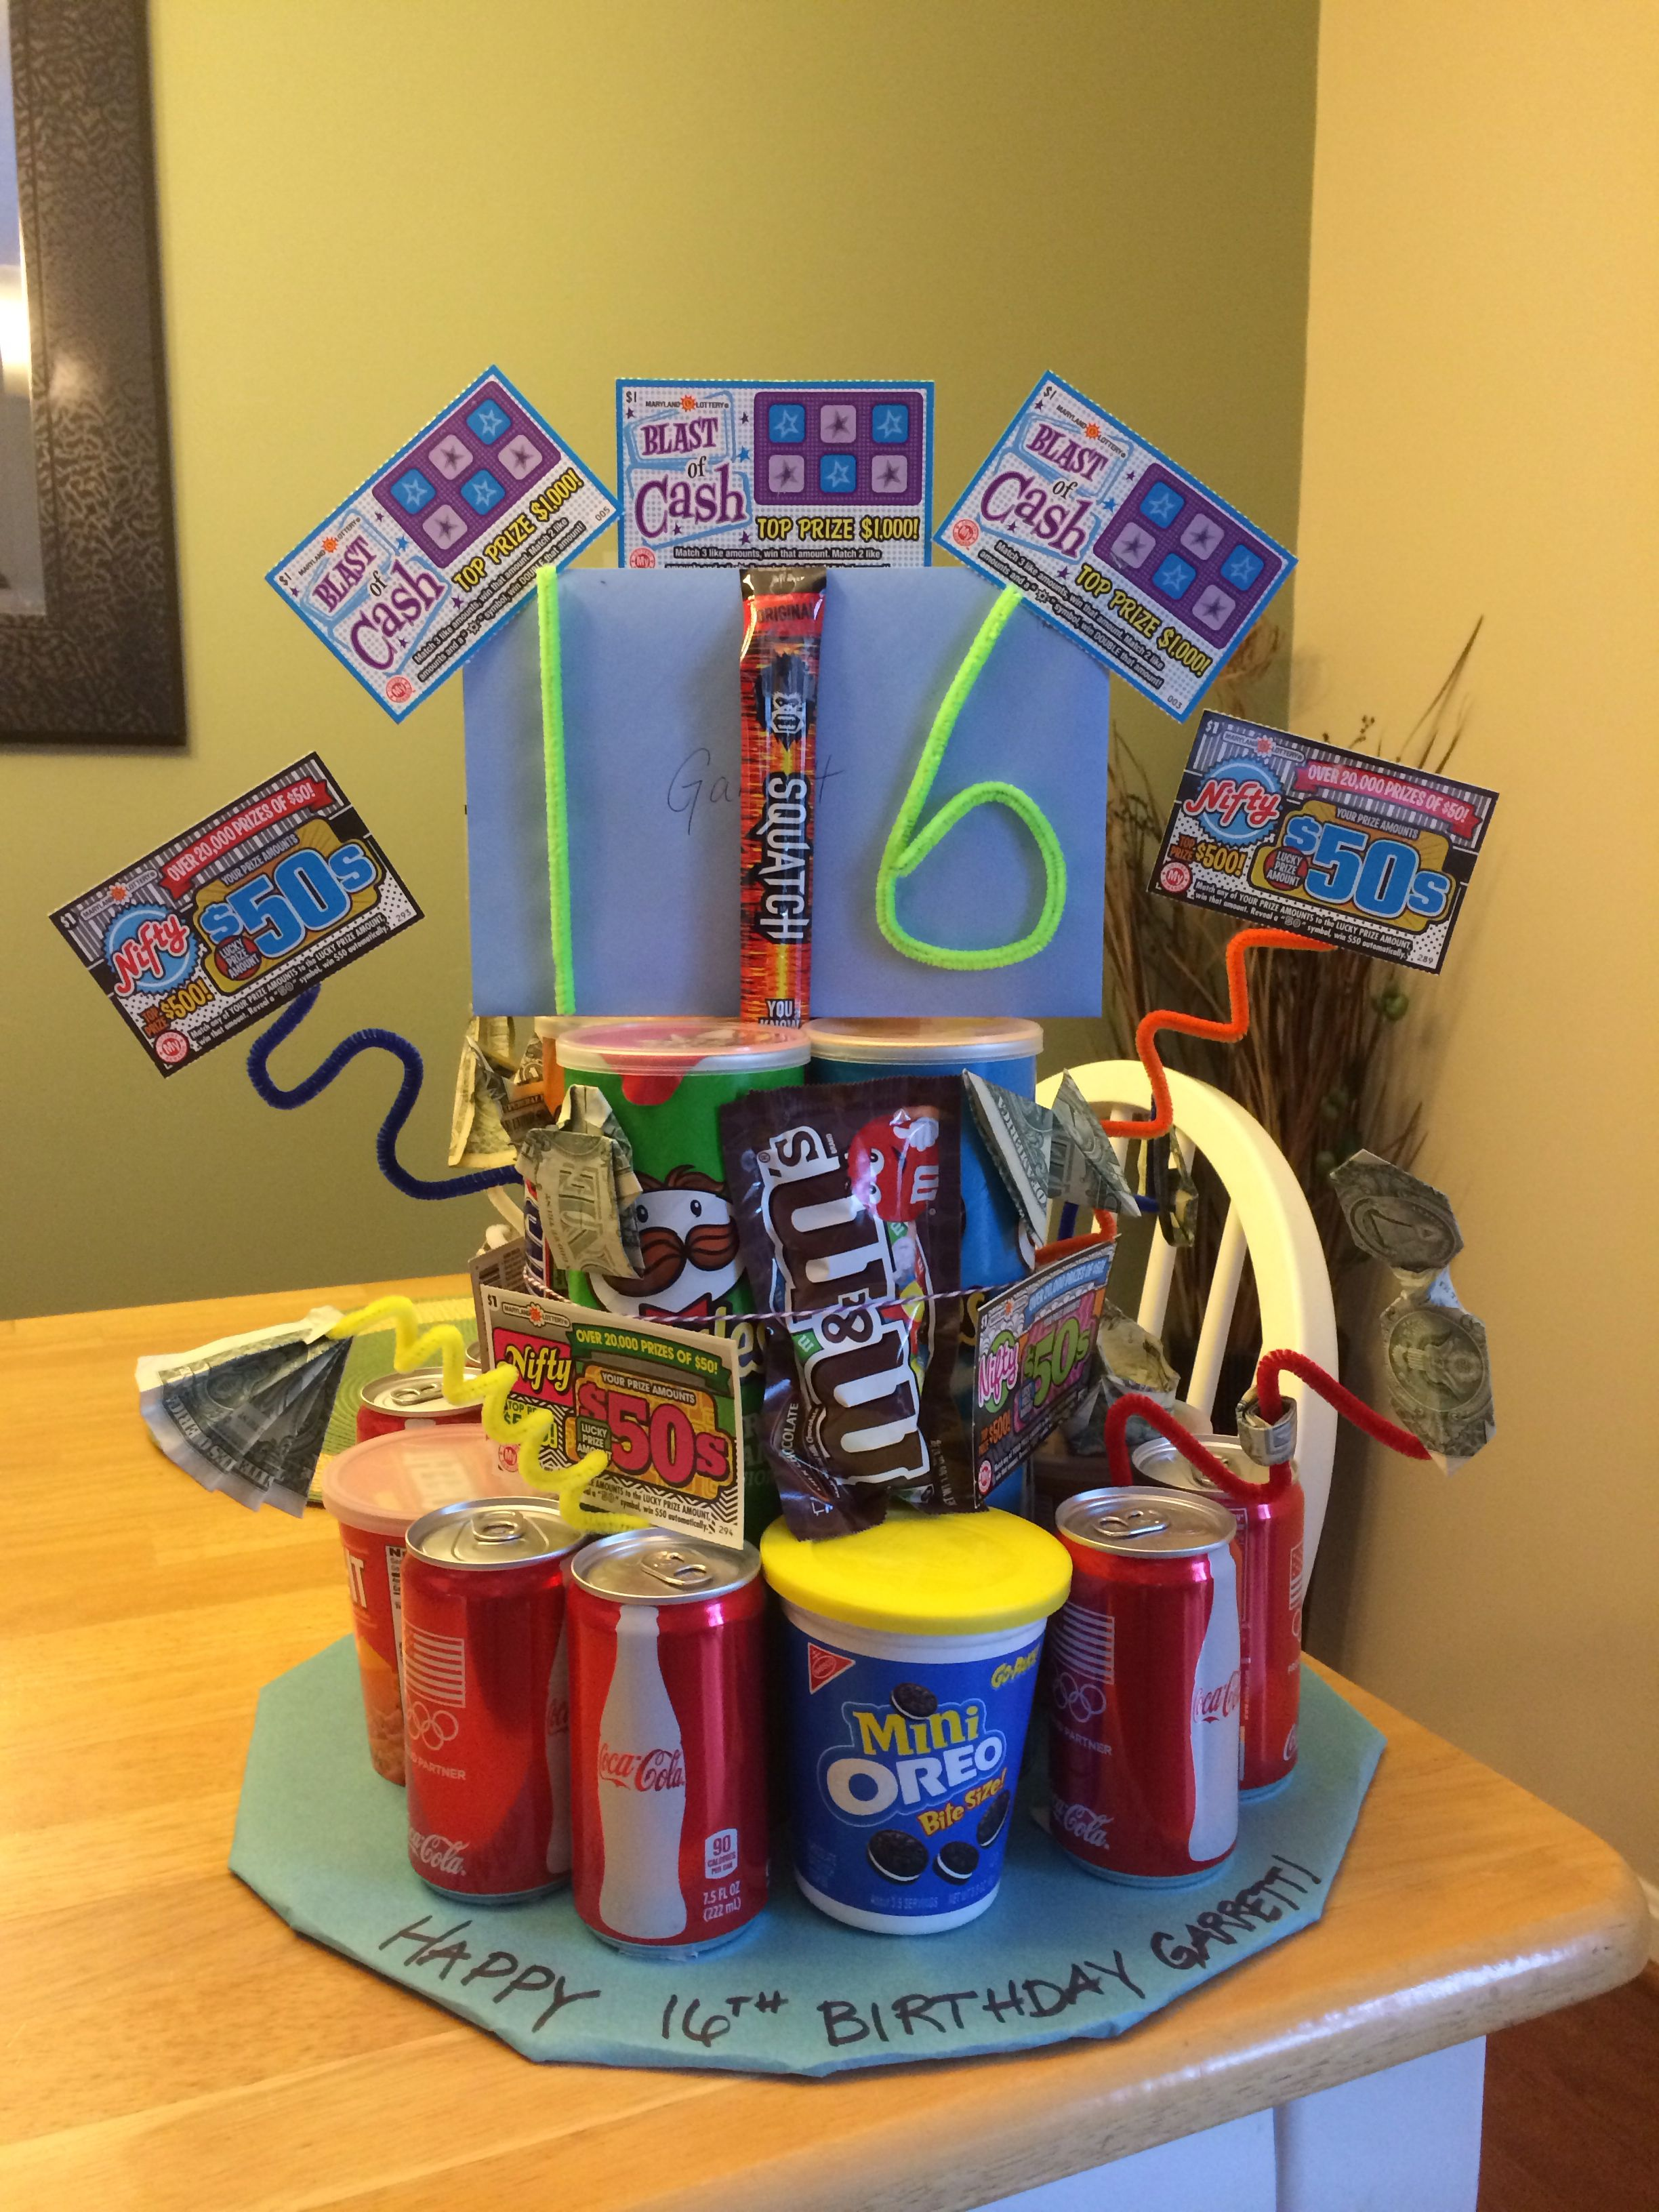 16th Birthday Cake For Boy Pringles Soda Cookies Lotto Tix Origami Dollars Candy Easy To Assemble Gift Idea